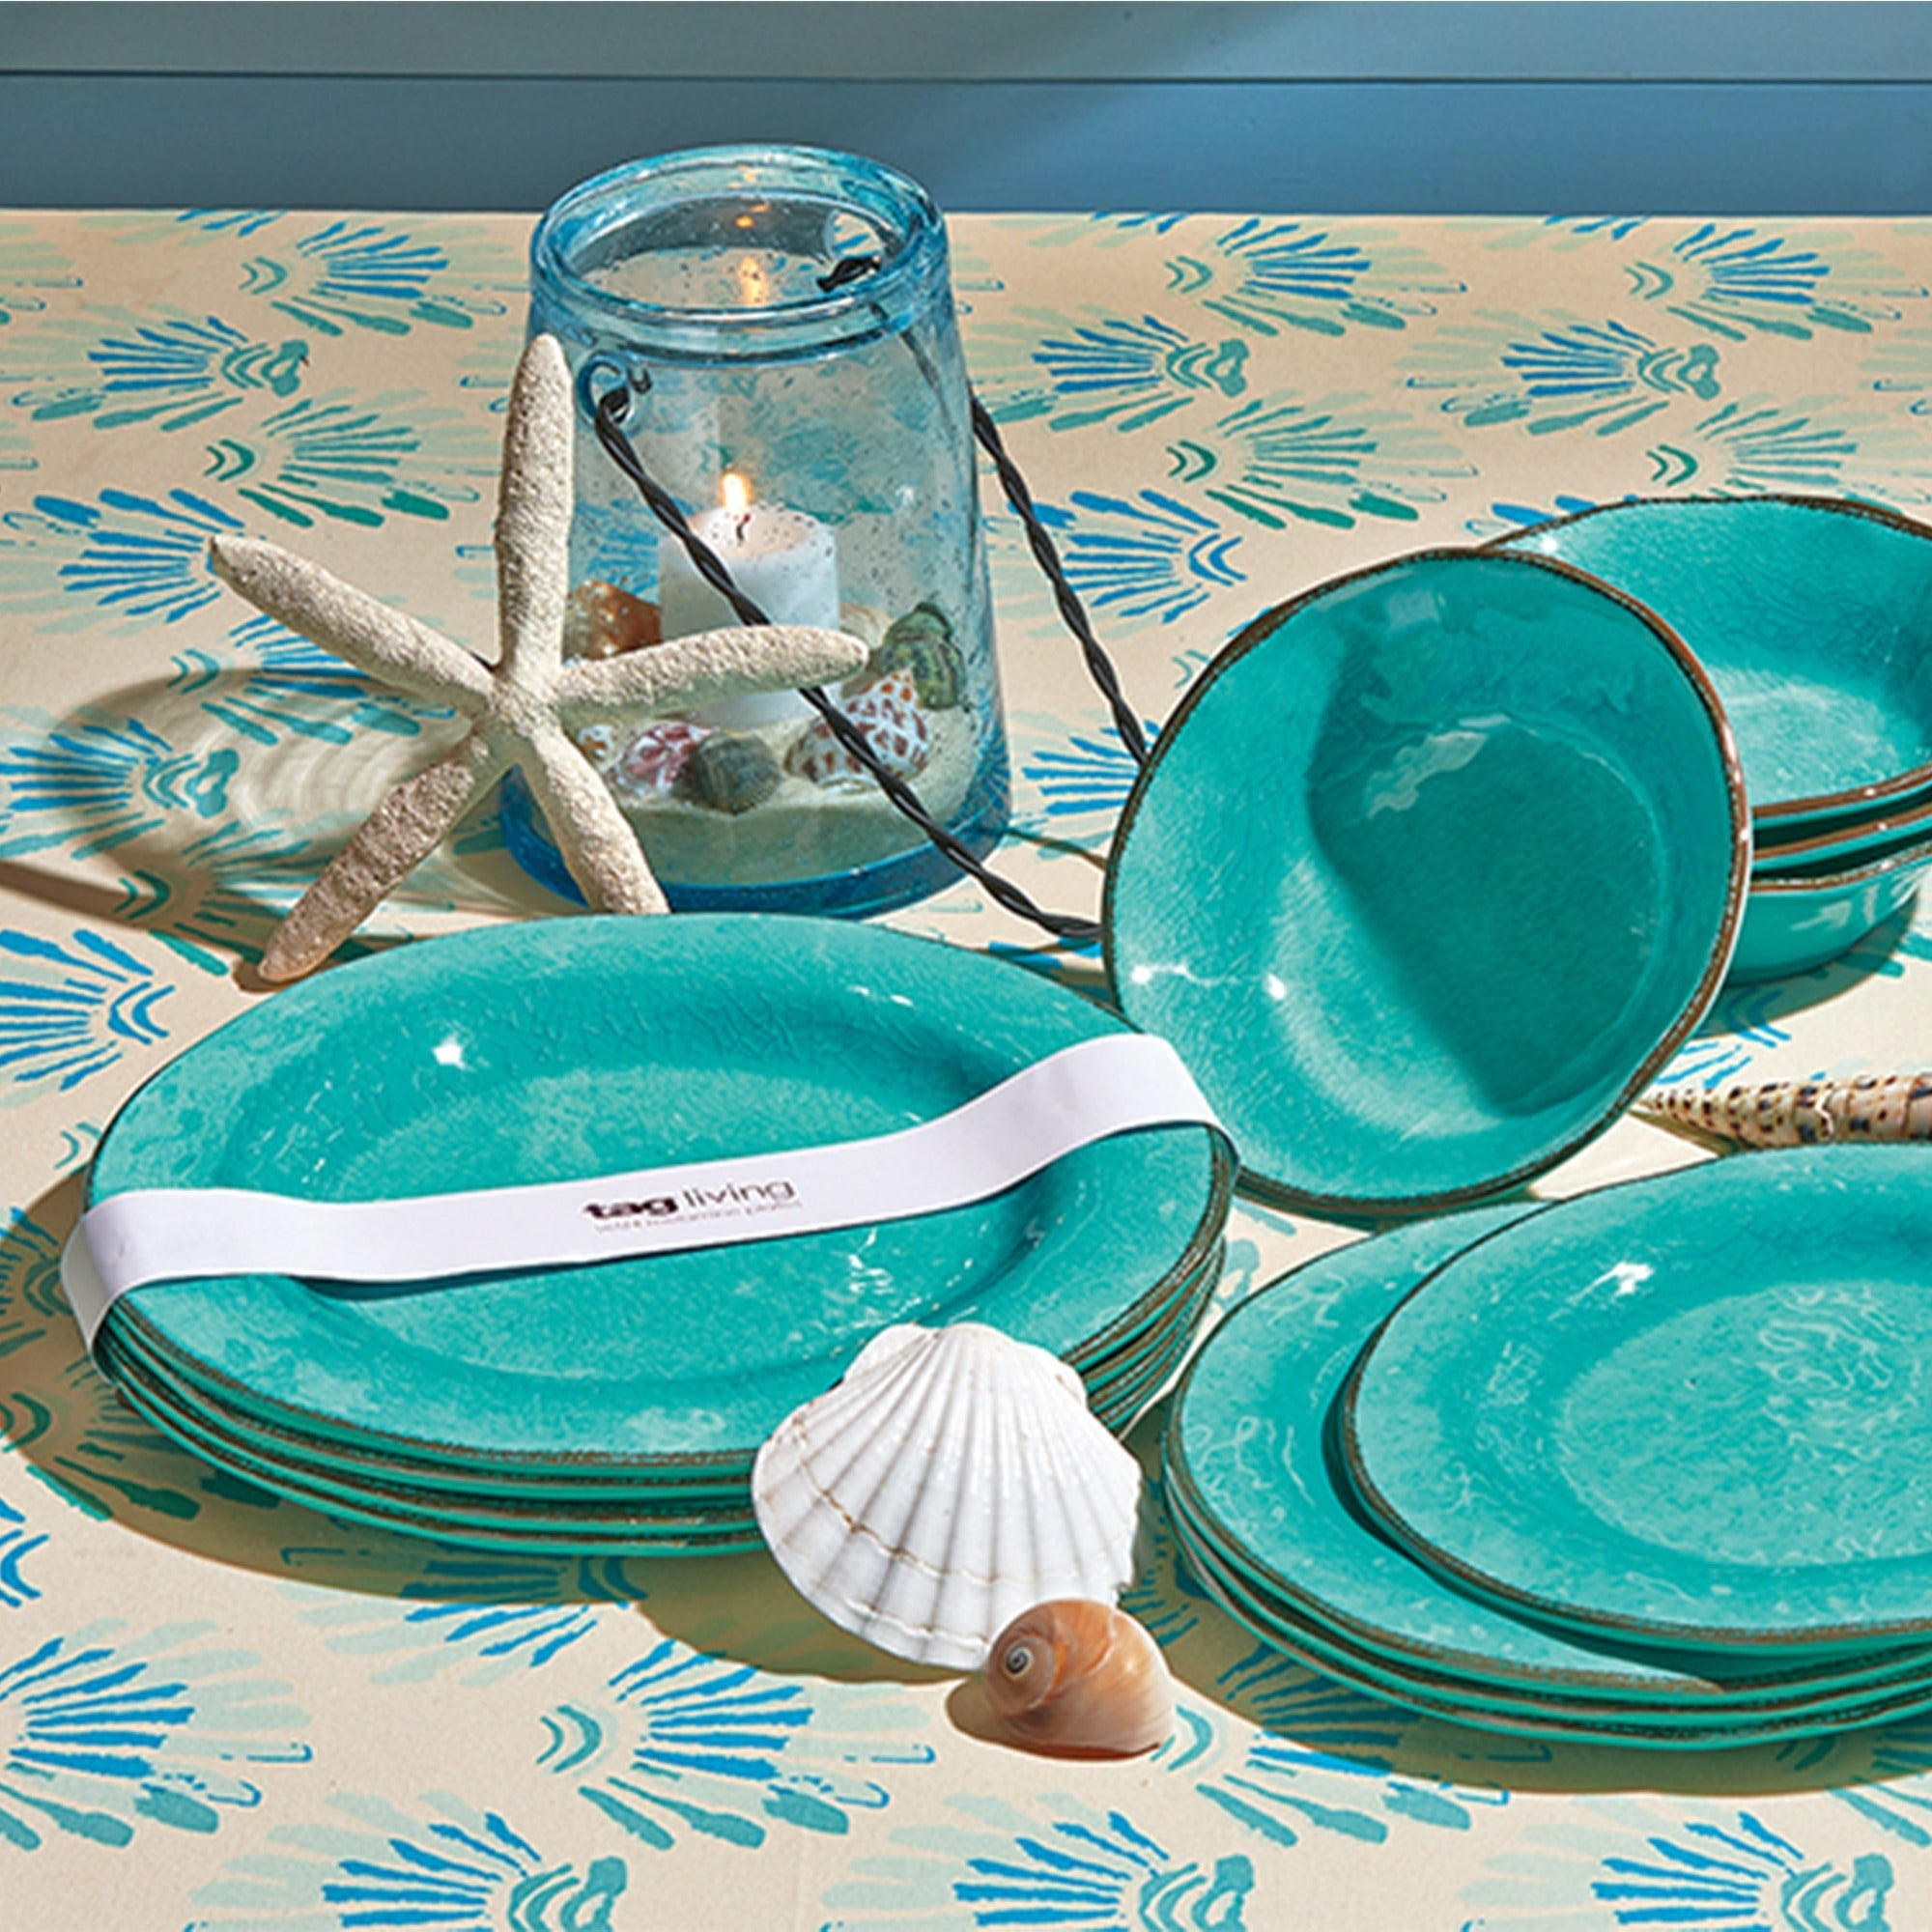 Teal Blue Dinner Plates Ocean Southern Living Dish Set Beach Dishes Round New